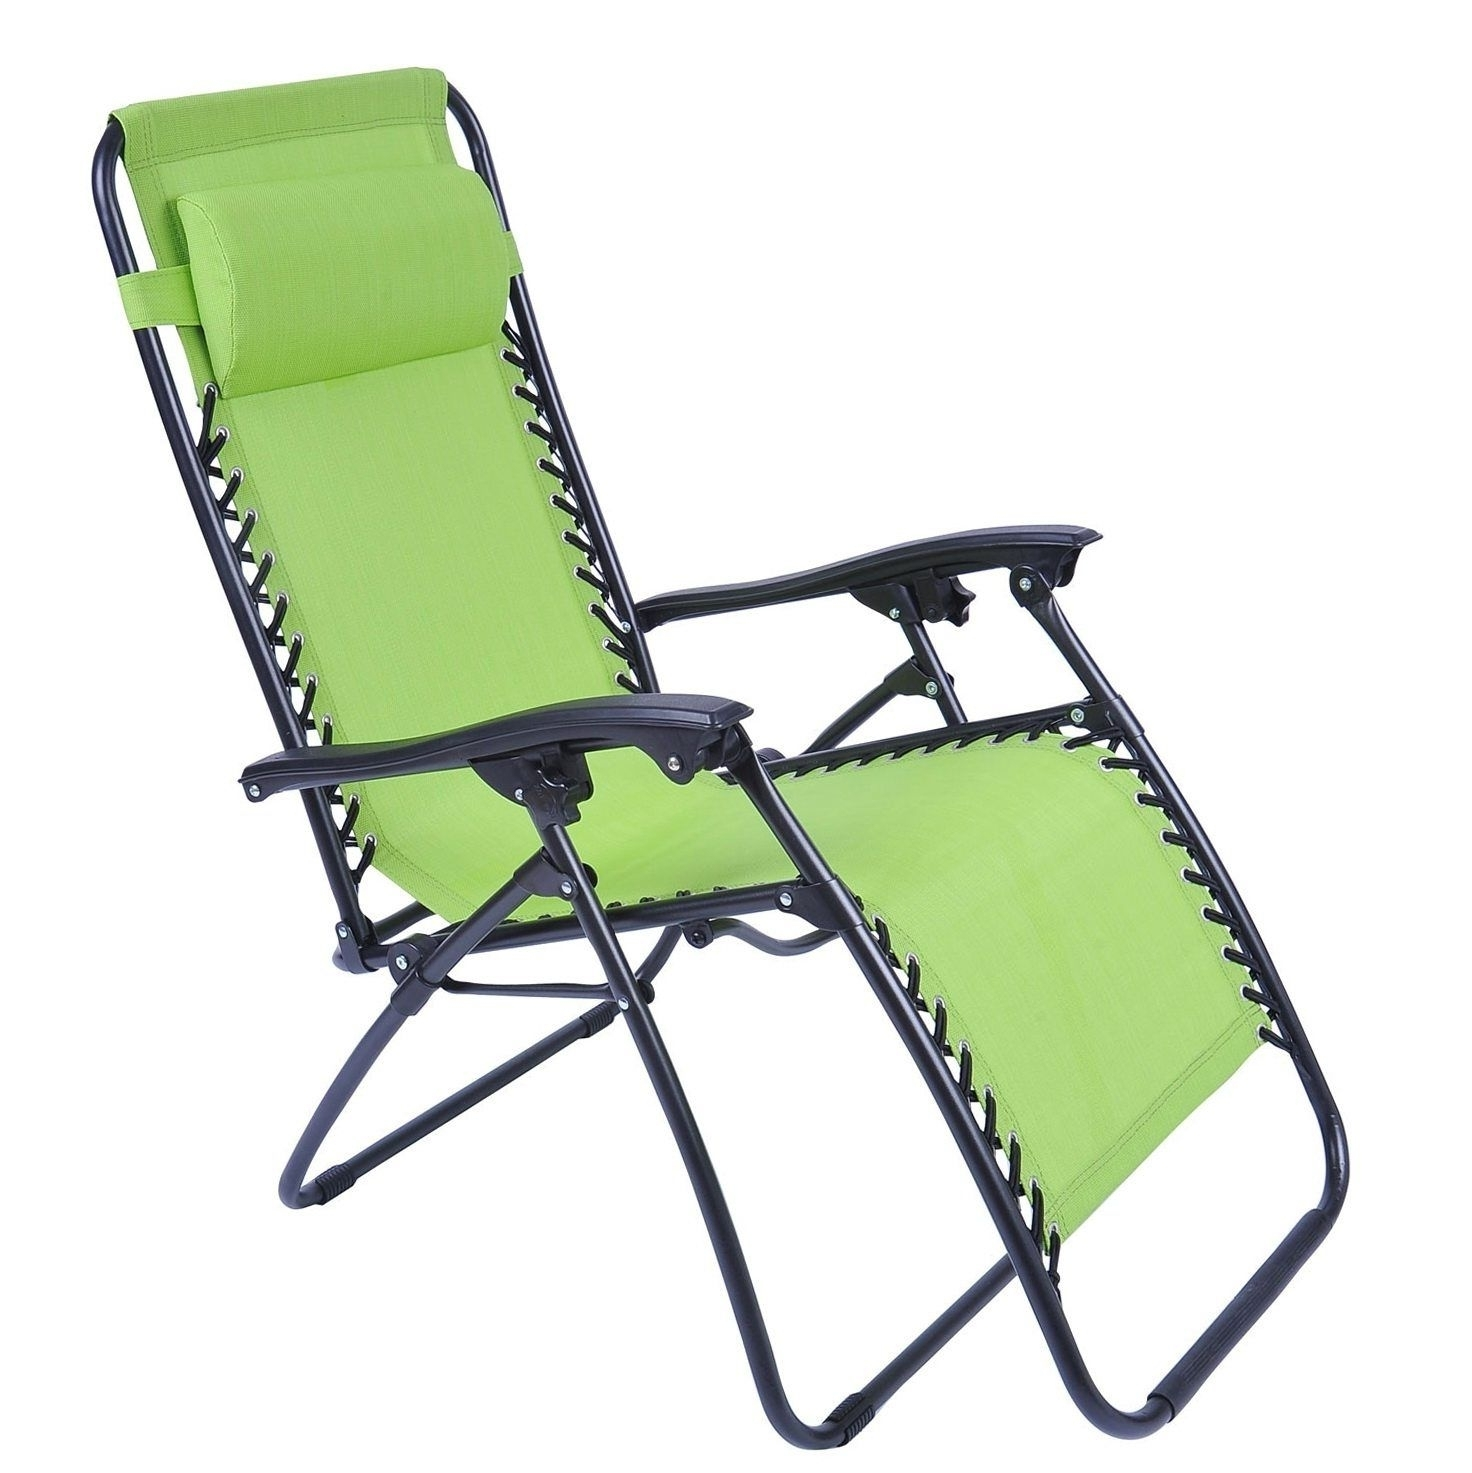 Folding Chaise Lounge Chairs For Most Up To Date Lounge Chair Outdoor Folding Folding Chaise Lounge Chair Patio (View 5 of 15)